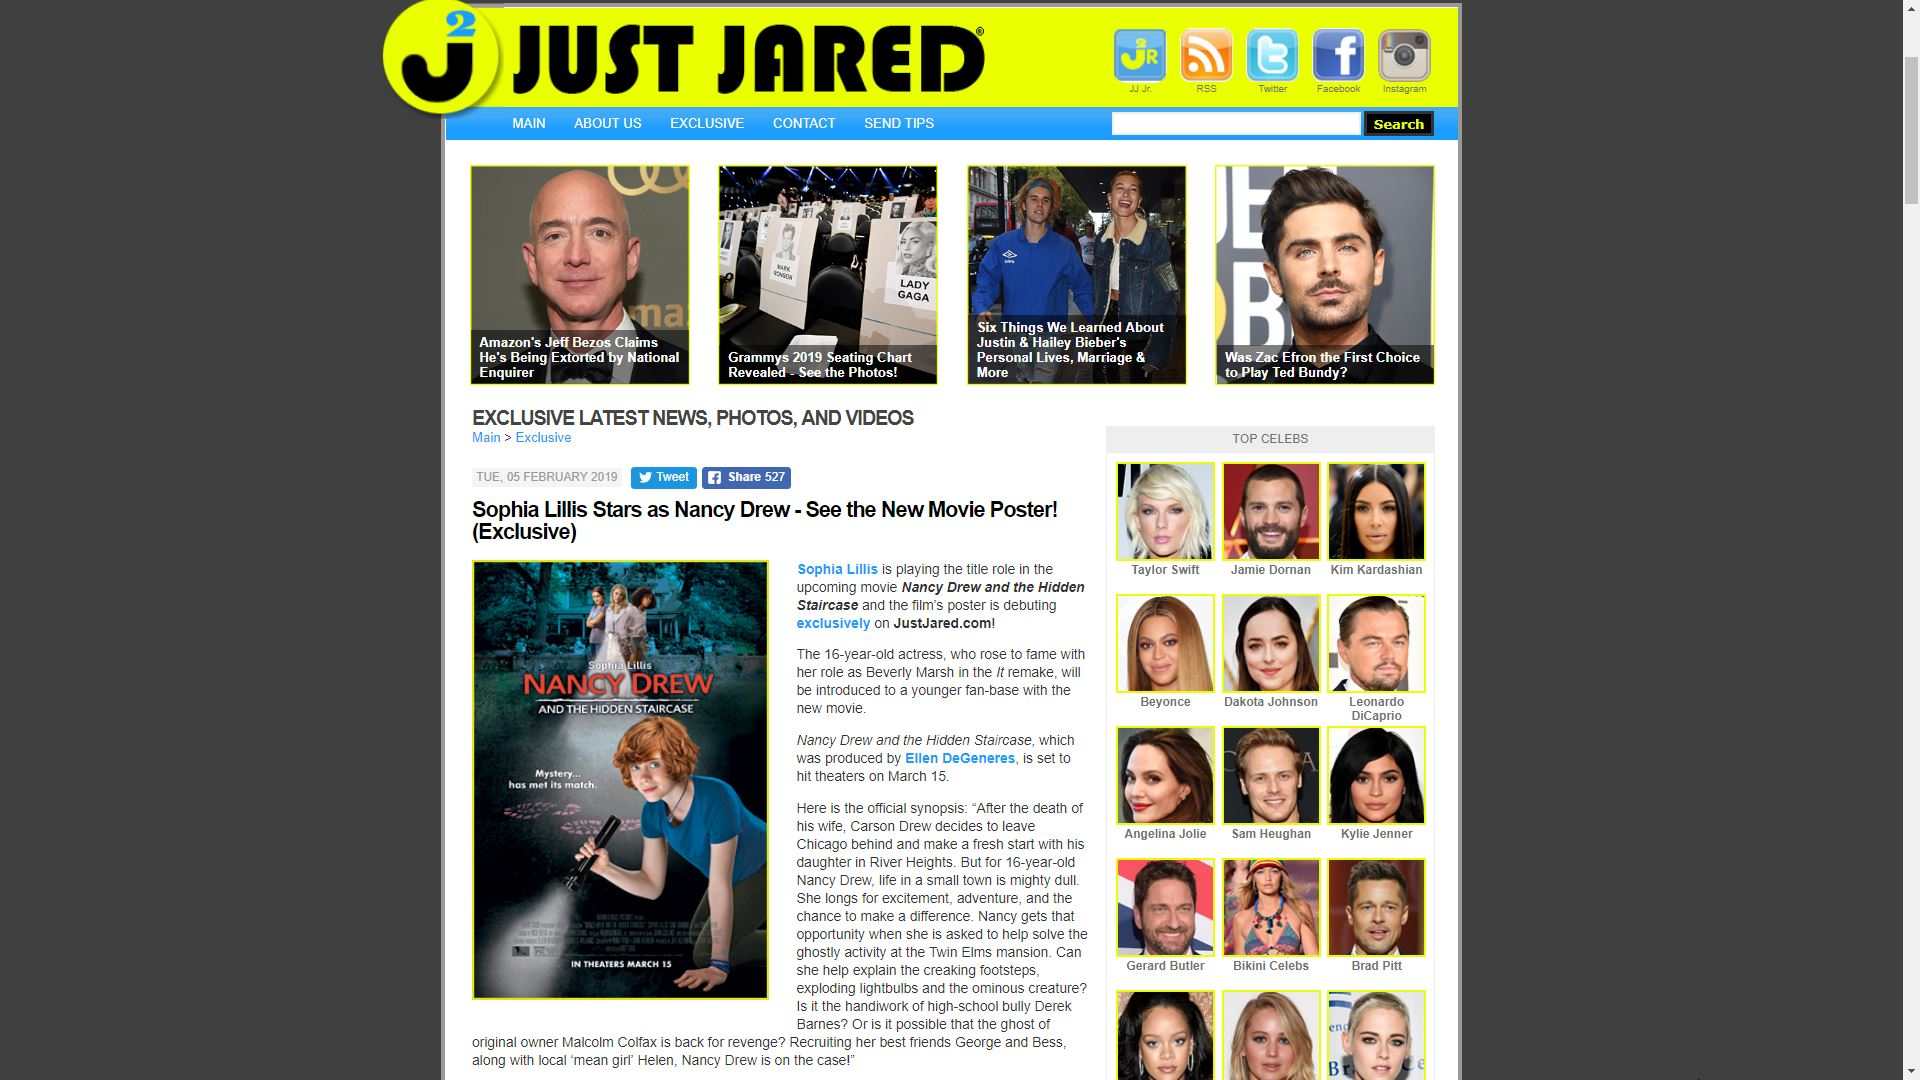 Just Jared Exclusive